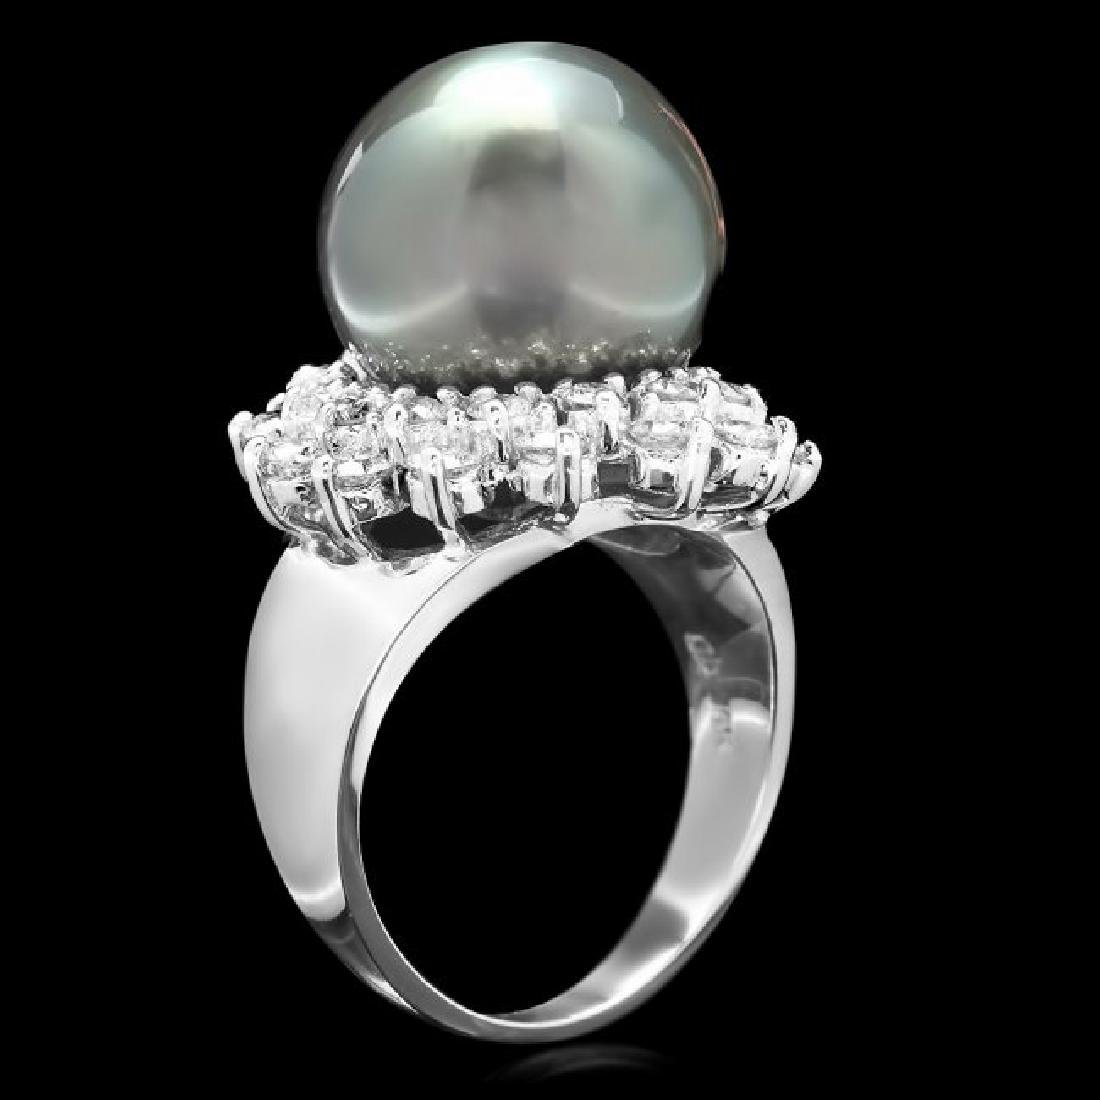 14k White Gold 13mm Pearl 1.55ct Diamond Ring - 3